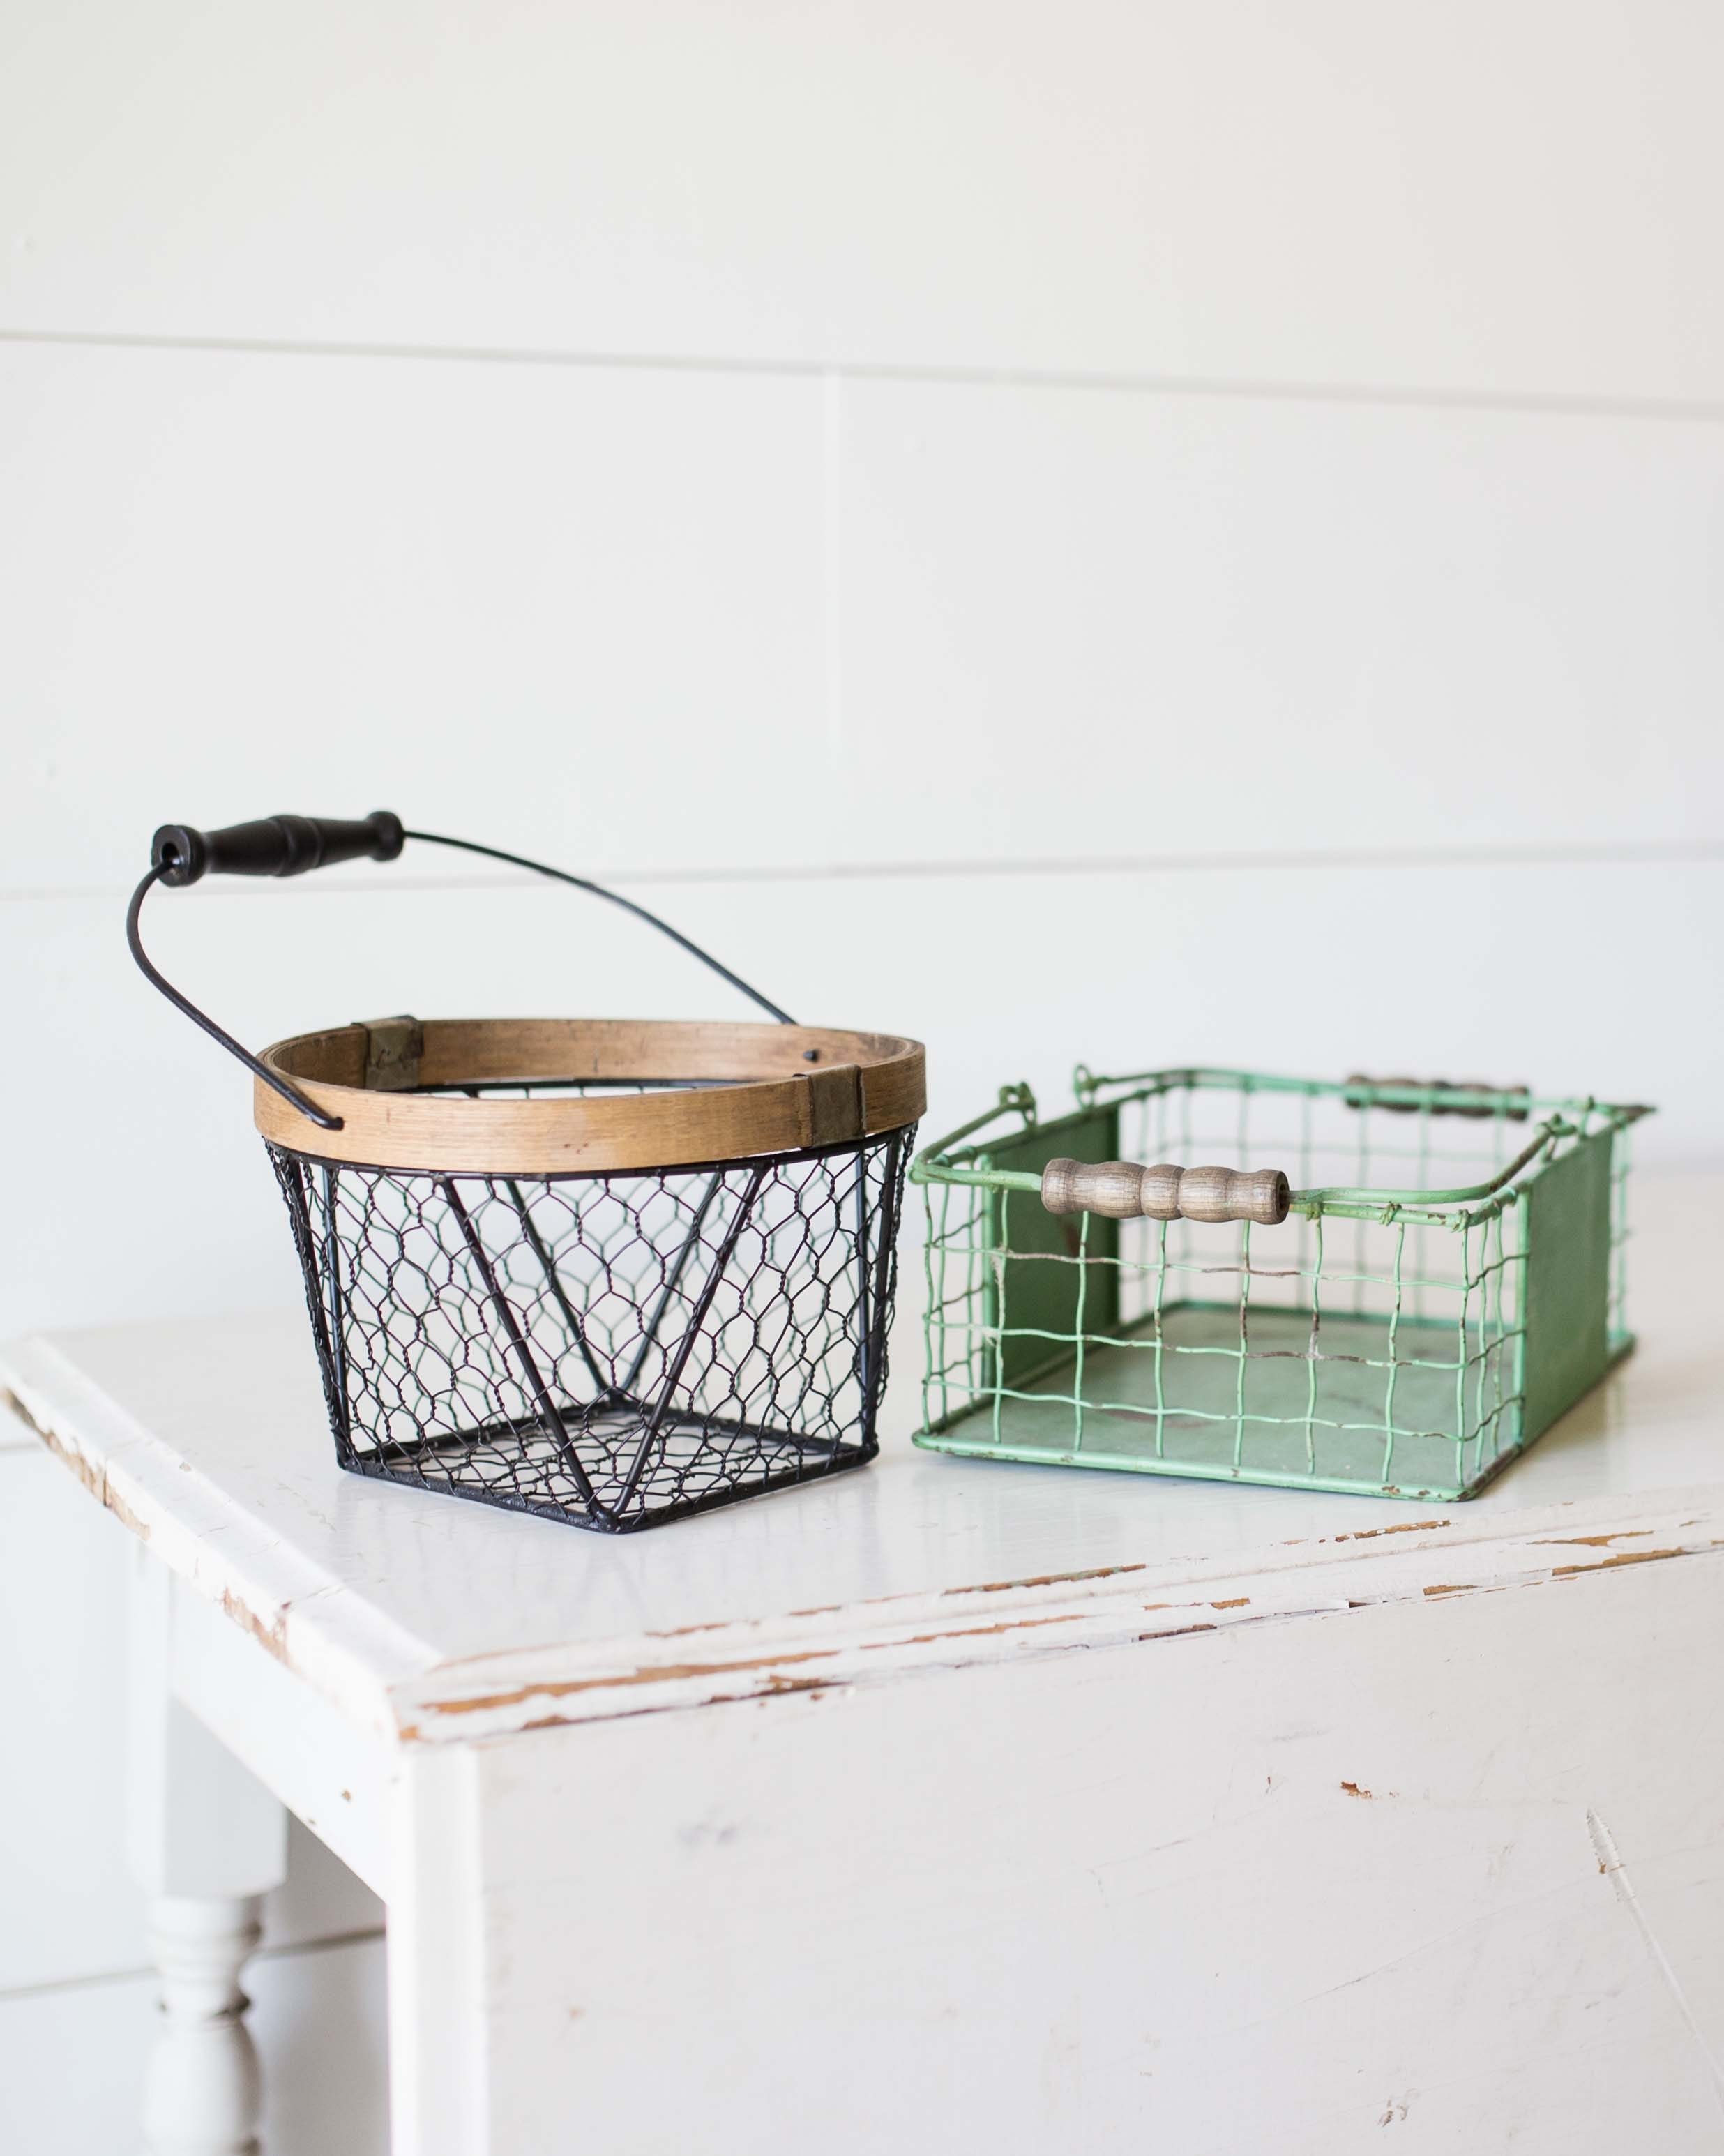 brown and green baskets on table